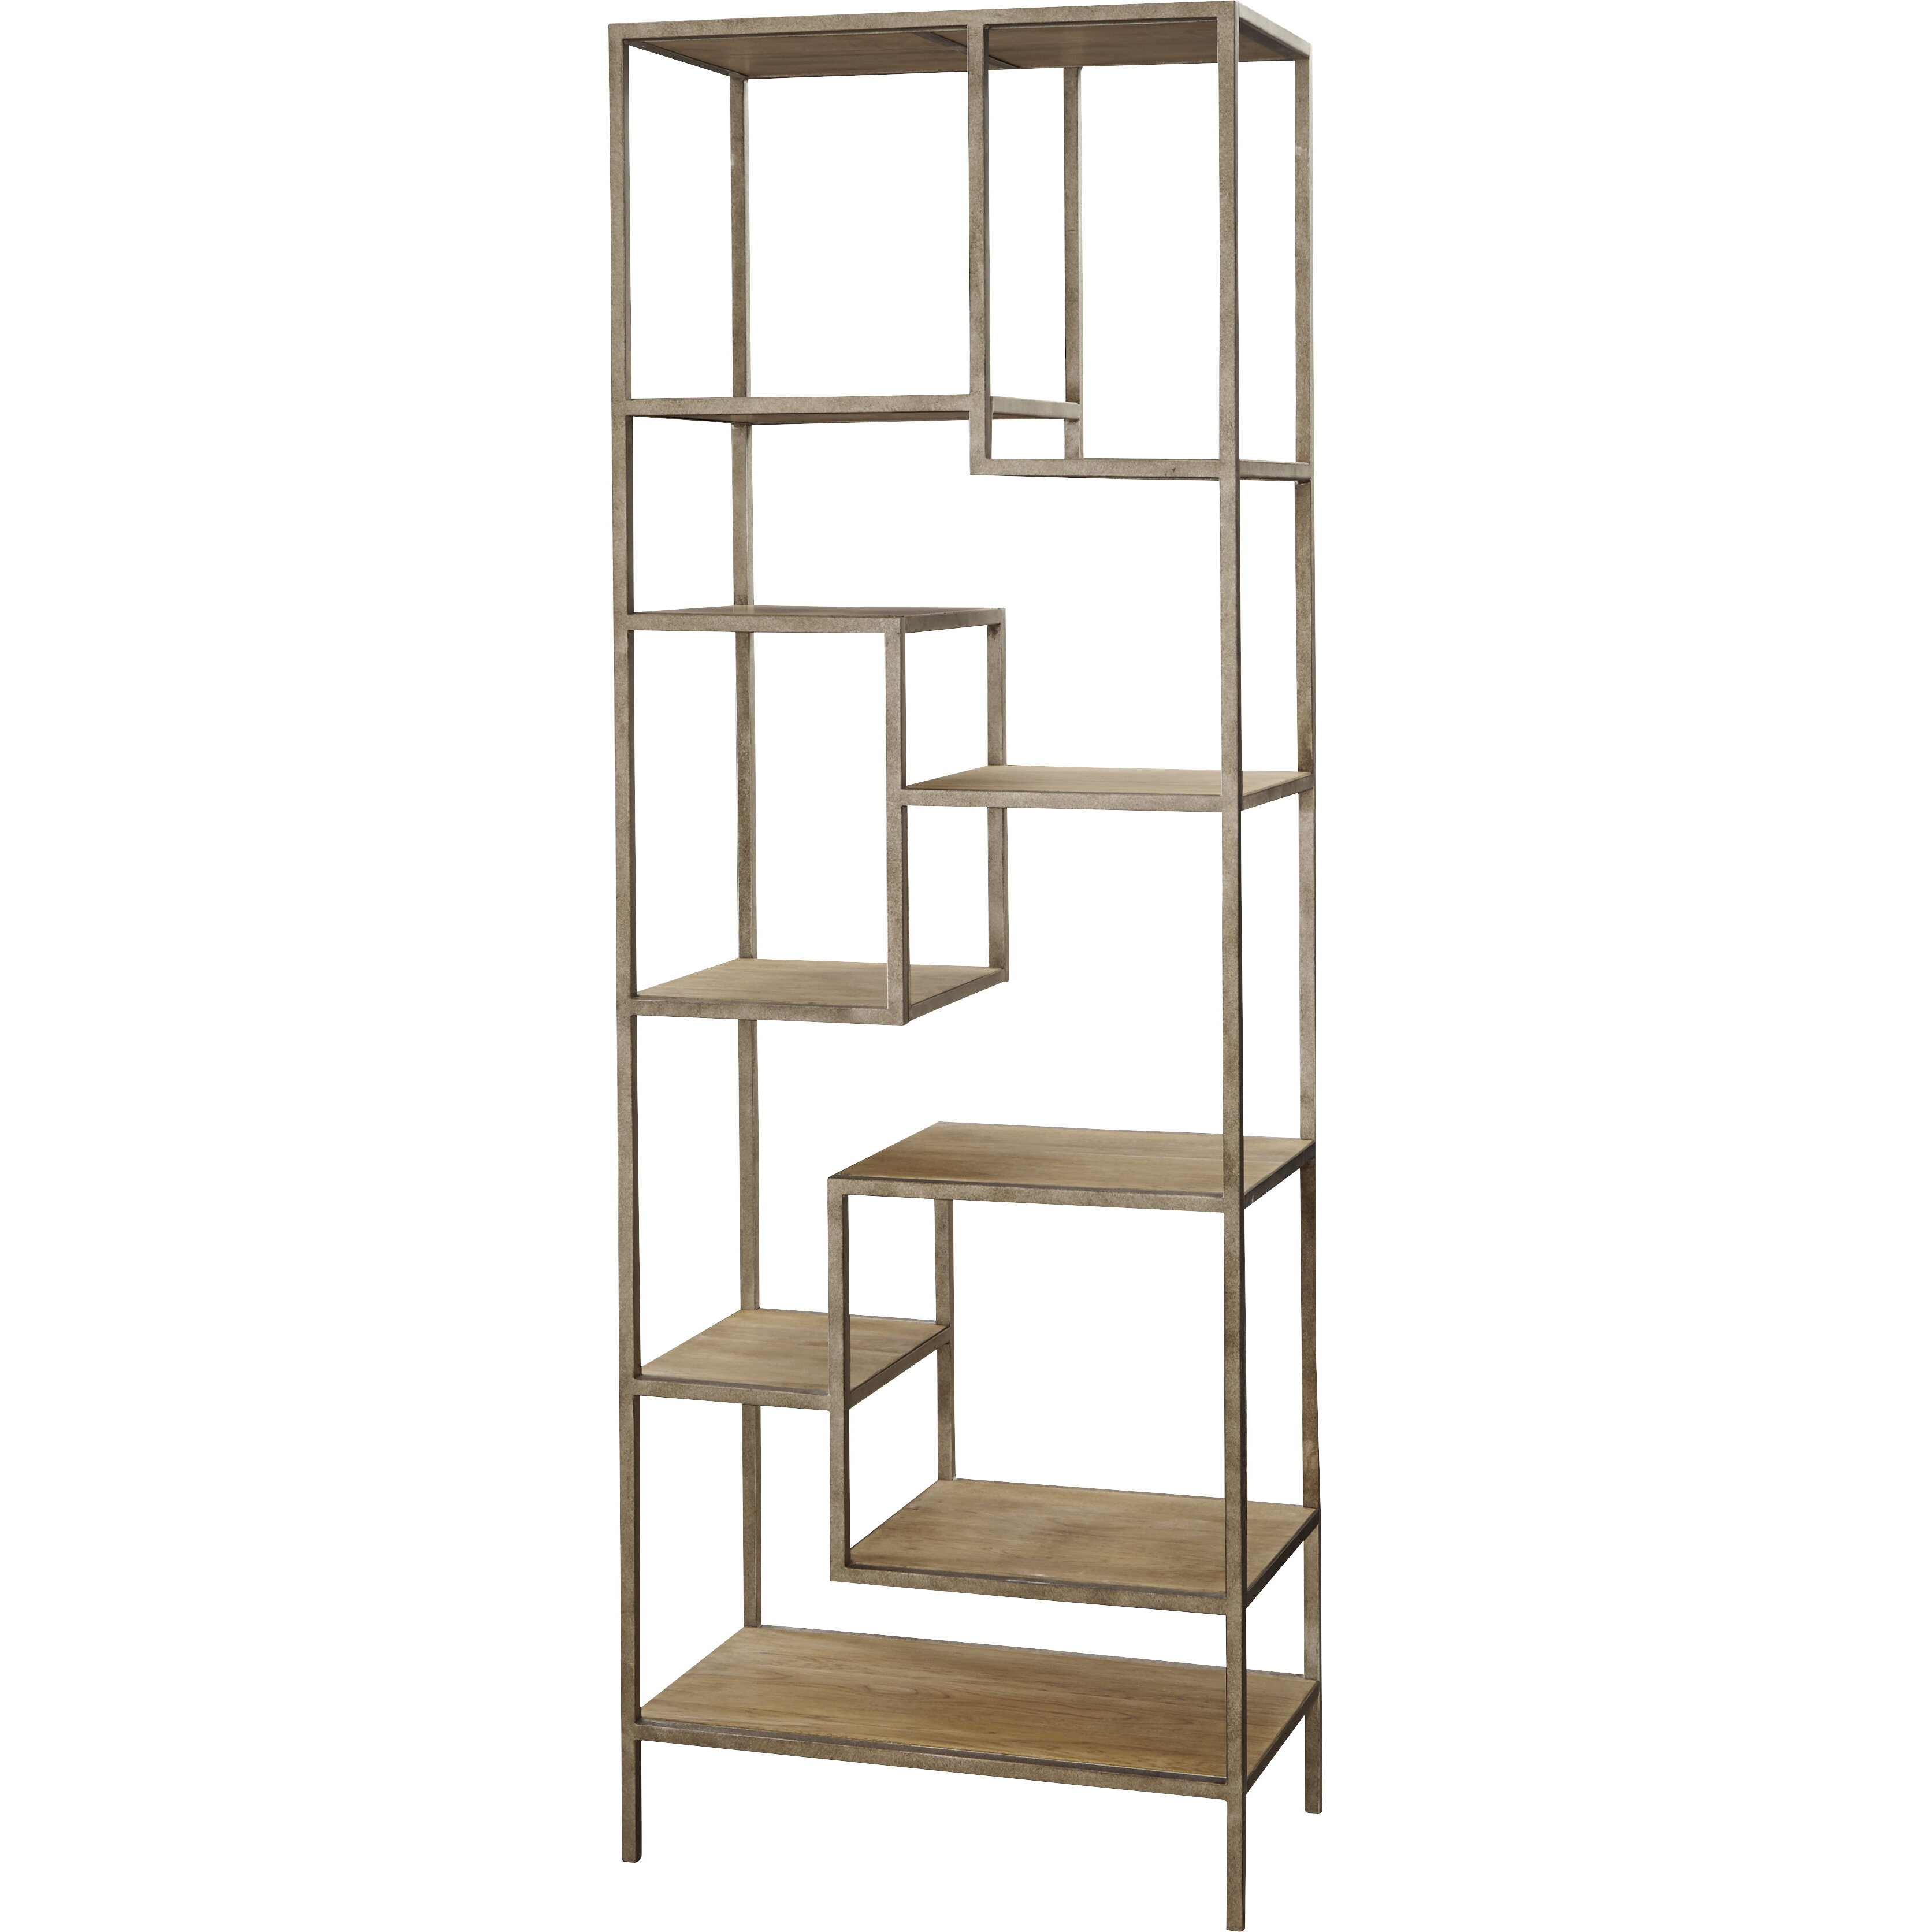 Universal furniture moderne muse 86 etagere bookcase for Dining room etagere